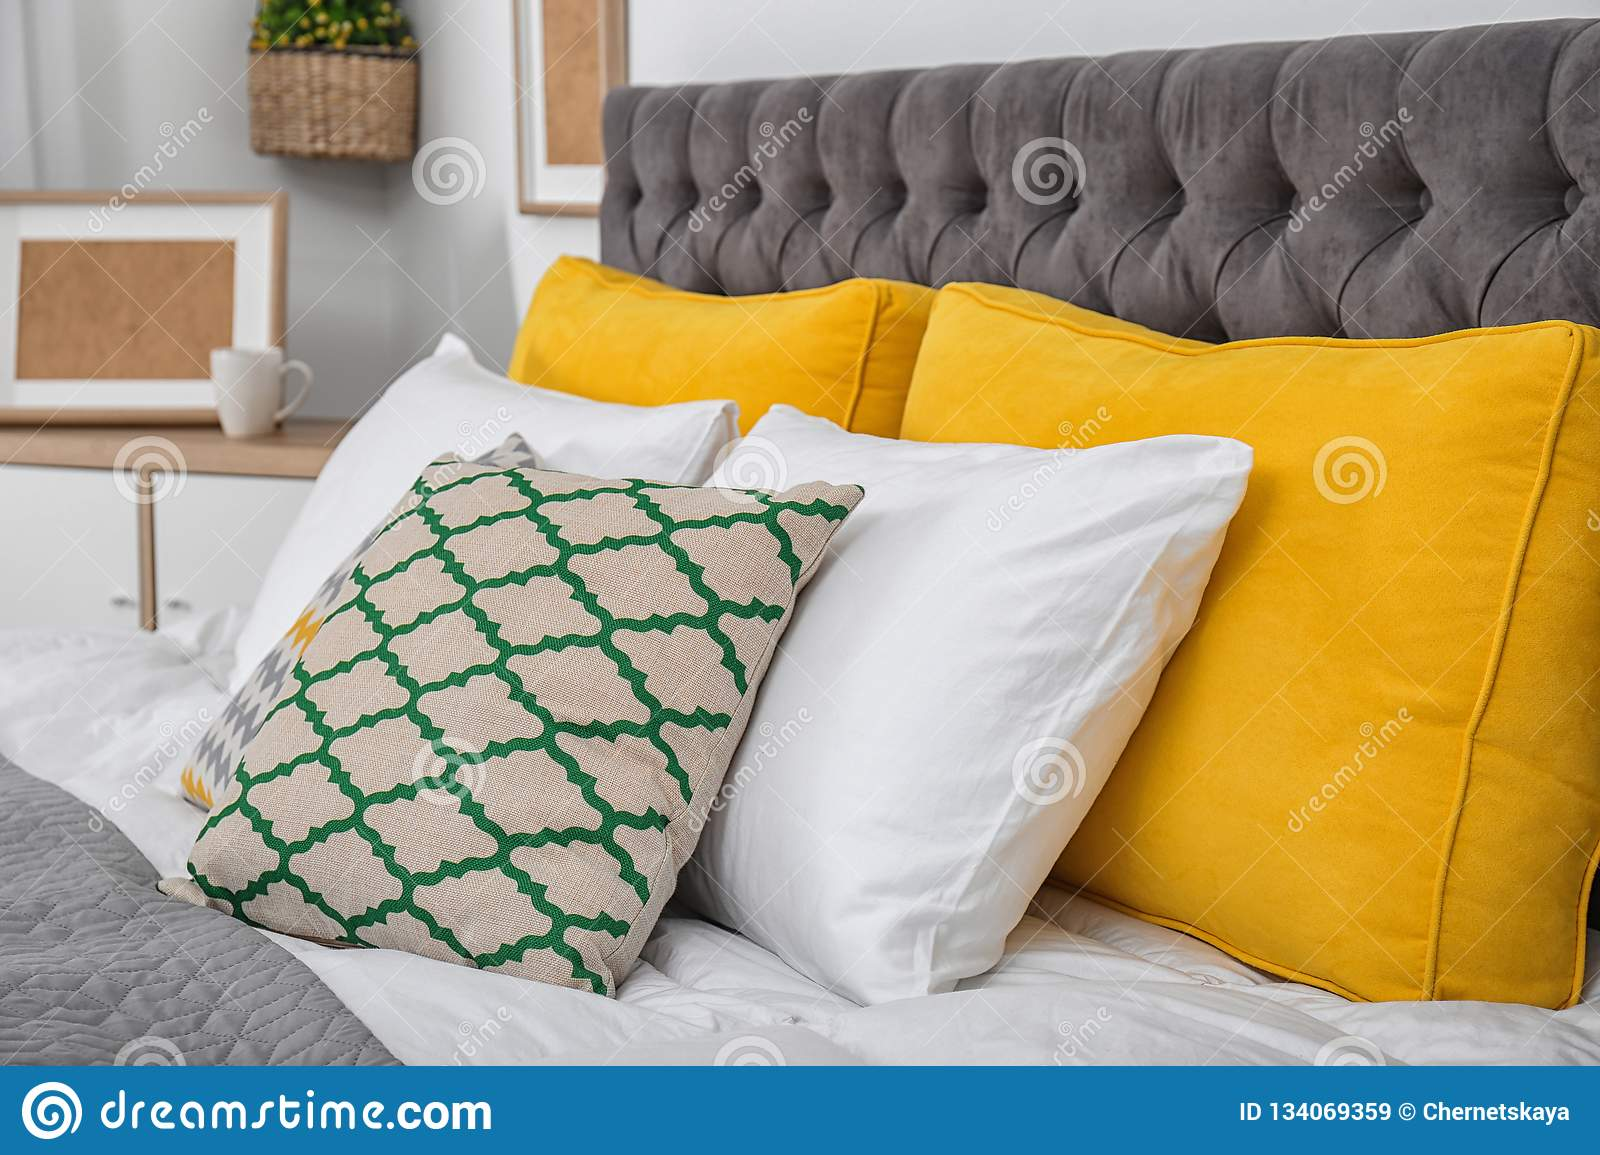 Big Bed With Soft Pillows In Stylish Room Stock Image Image Of